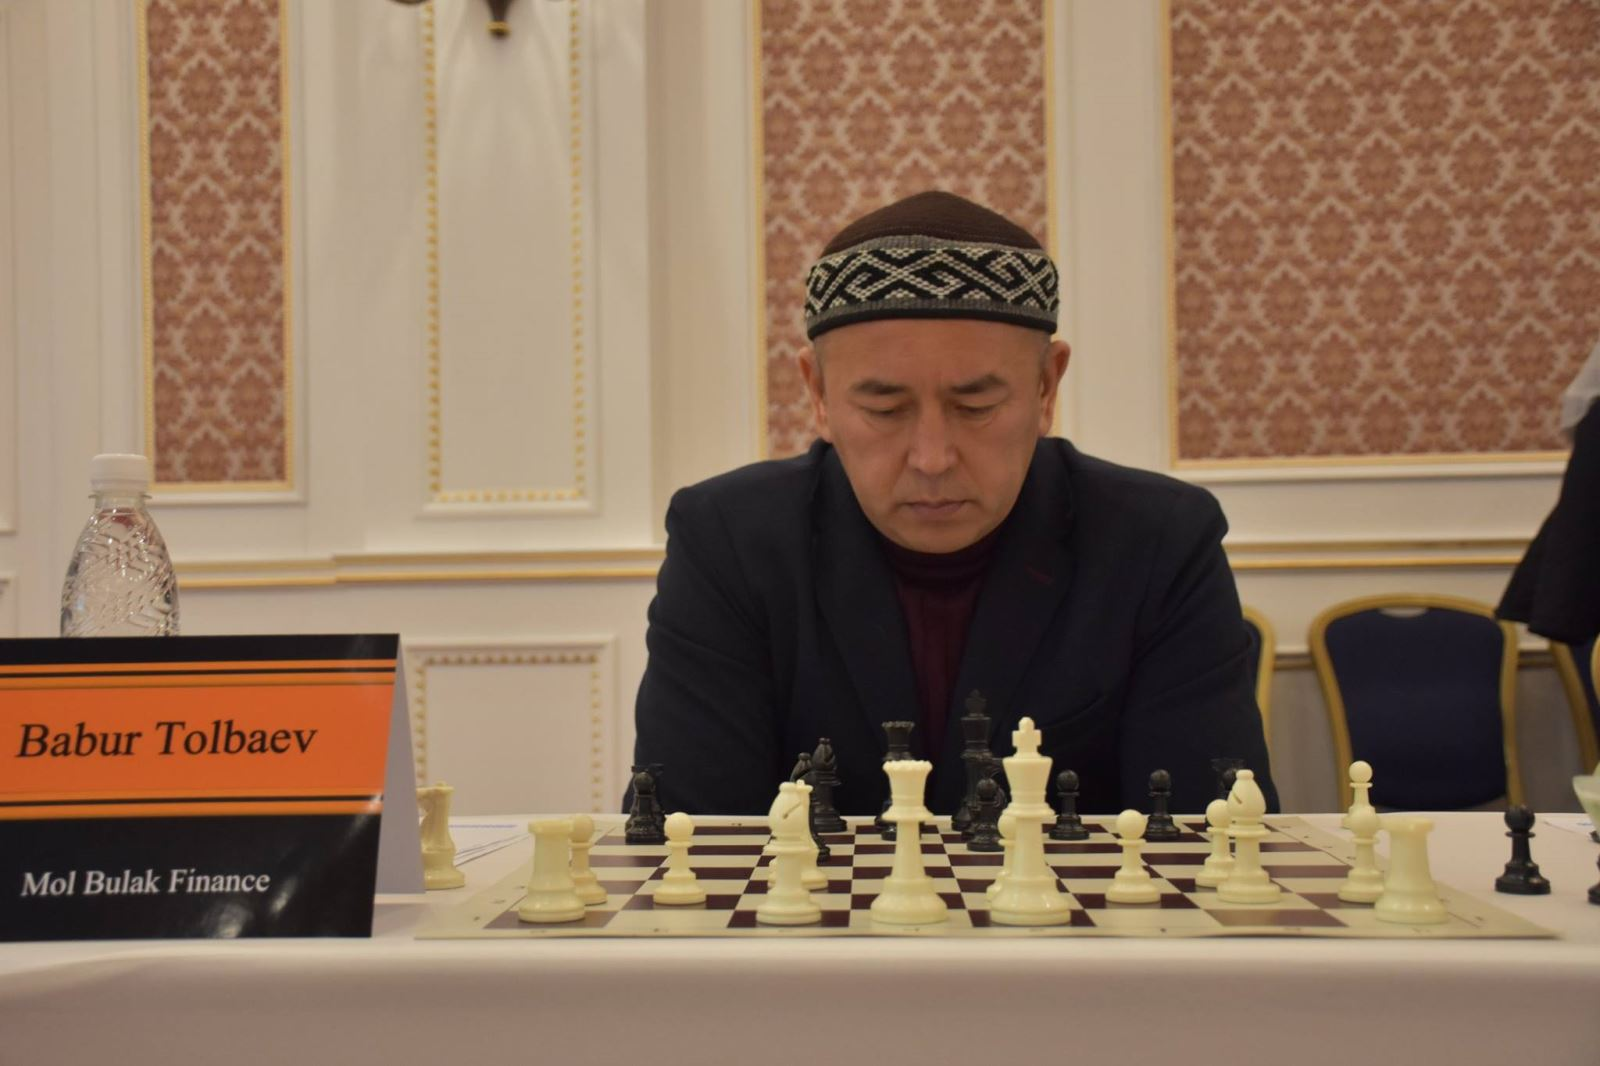 General Director of Mol Bulak Finance, Mr Babur Tolbaev playing against Nigel Short at the simultaneous exhibition